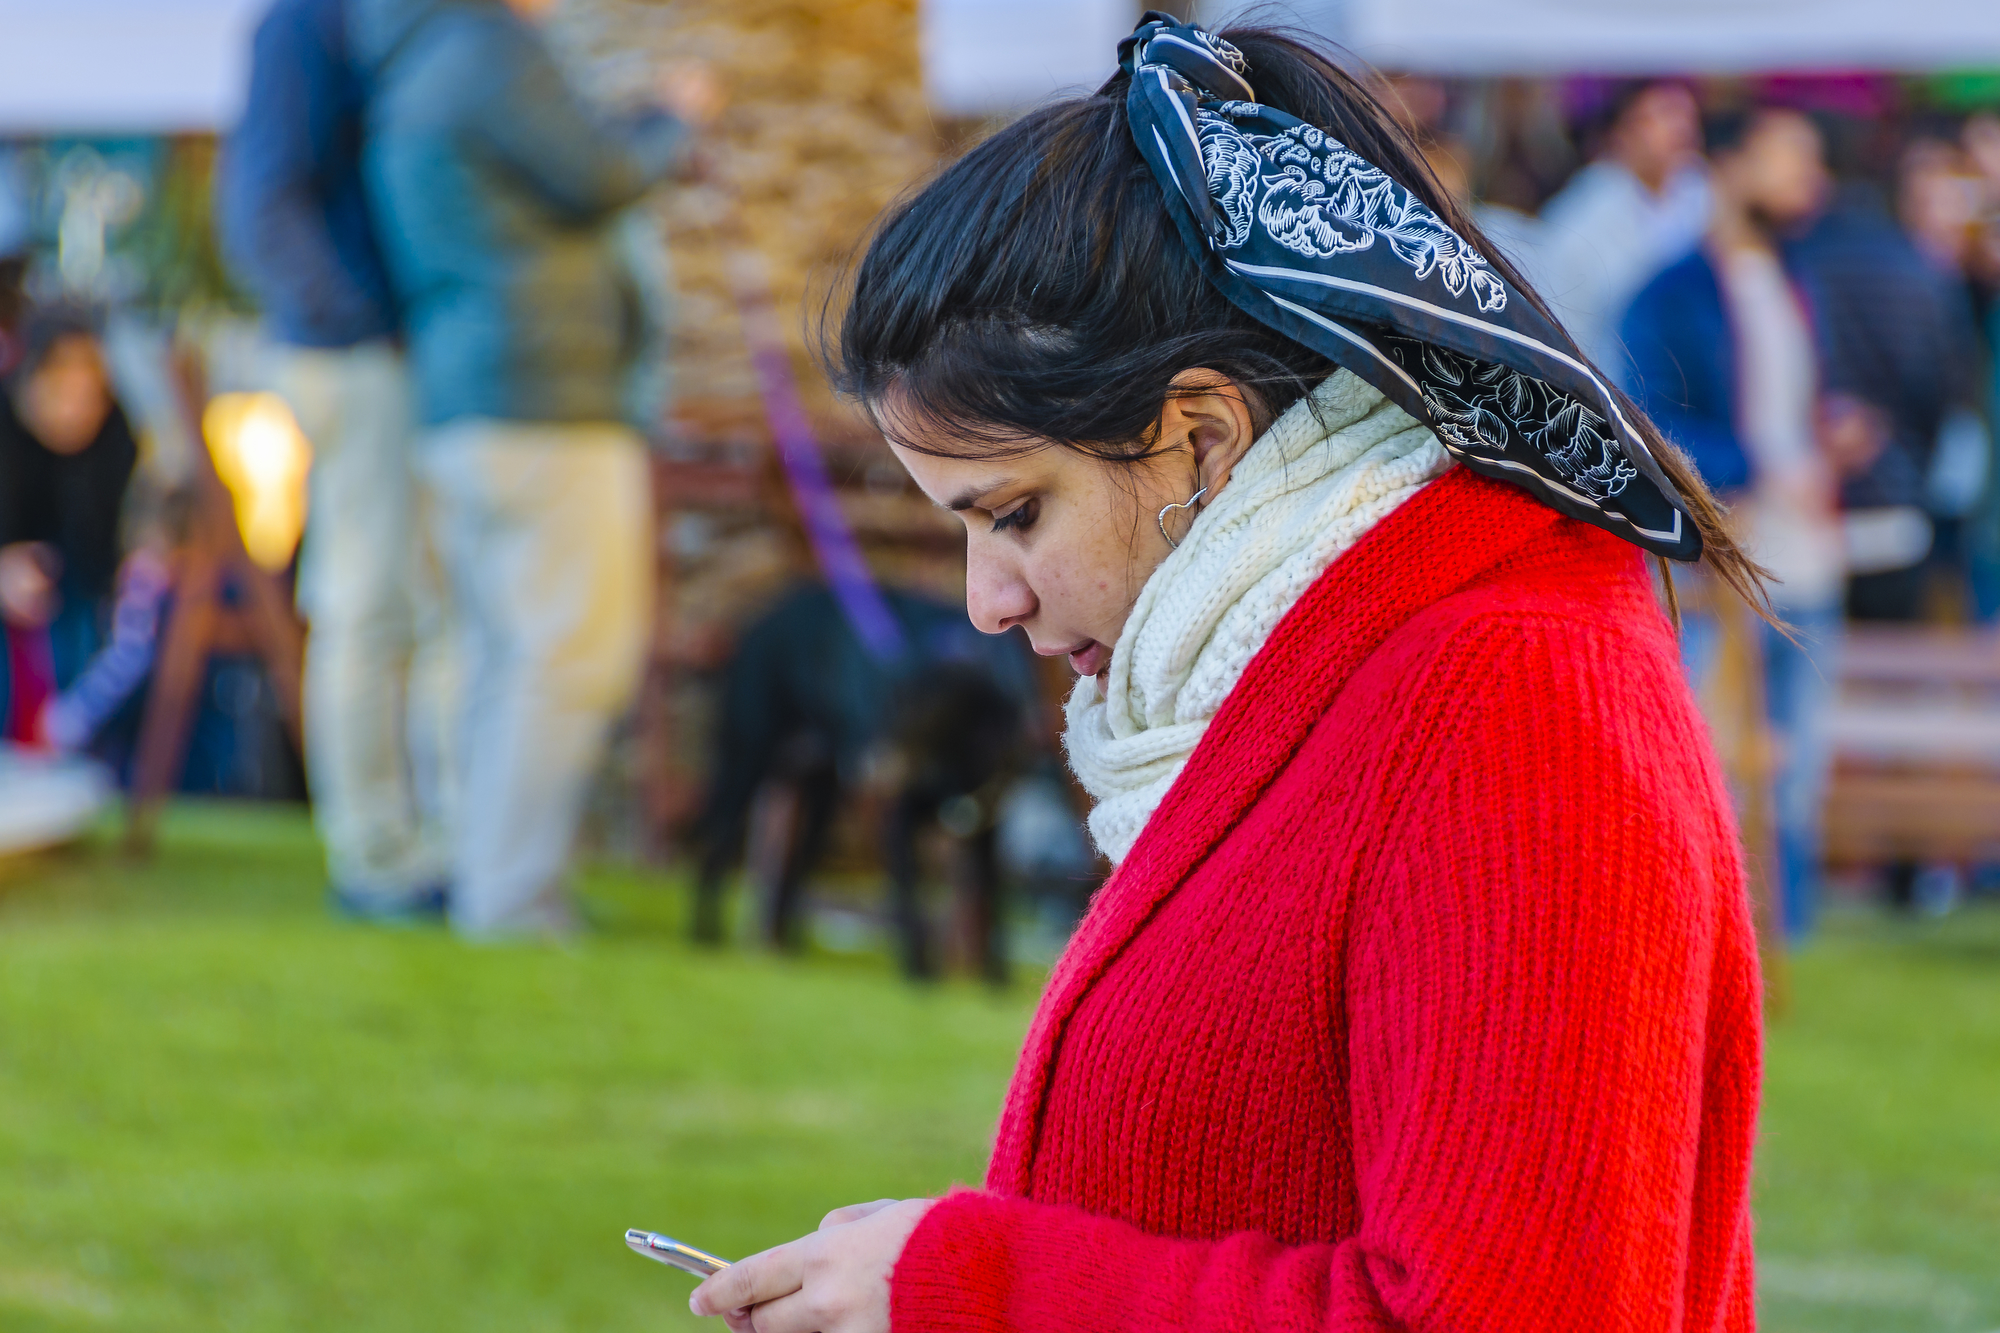 Young woman watching her cellphone at urban outdoor street fair, montevideo city, uruguay